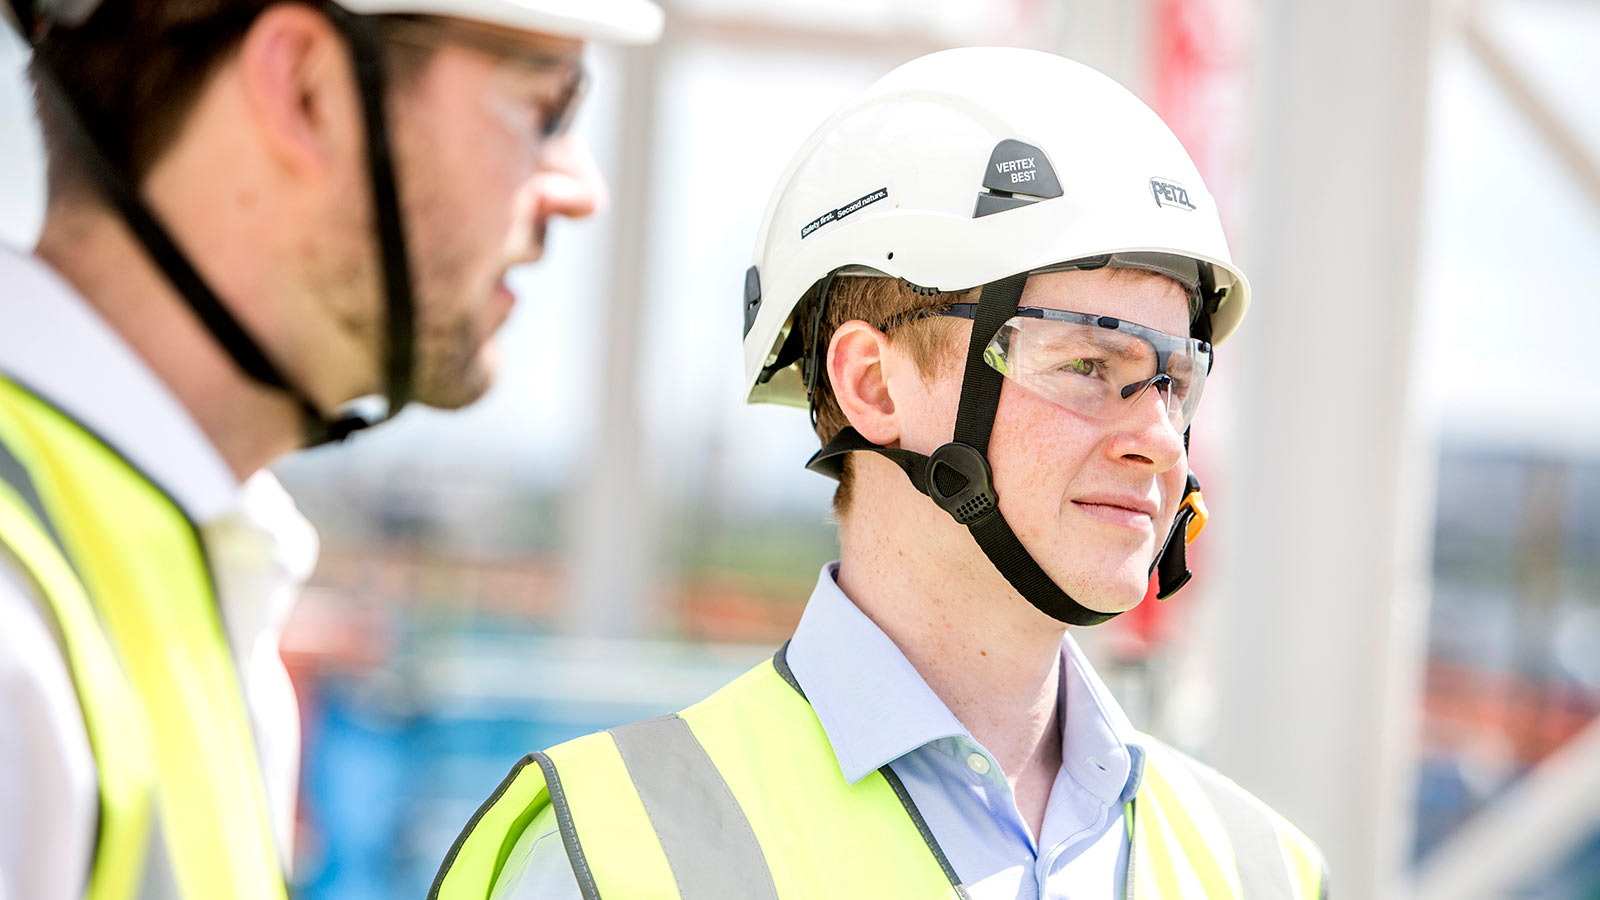 Thomas Bennett, Graduate Trainee, Construction